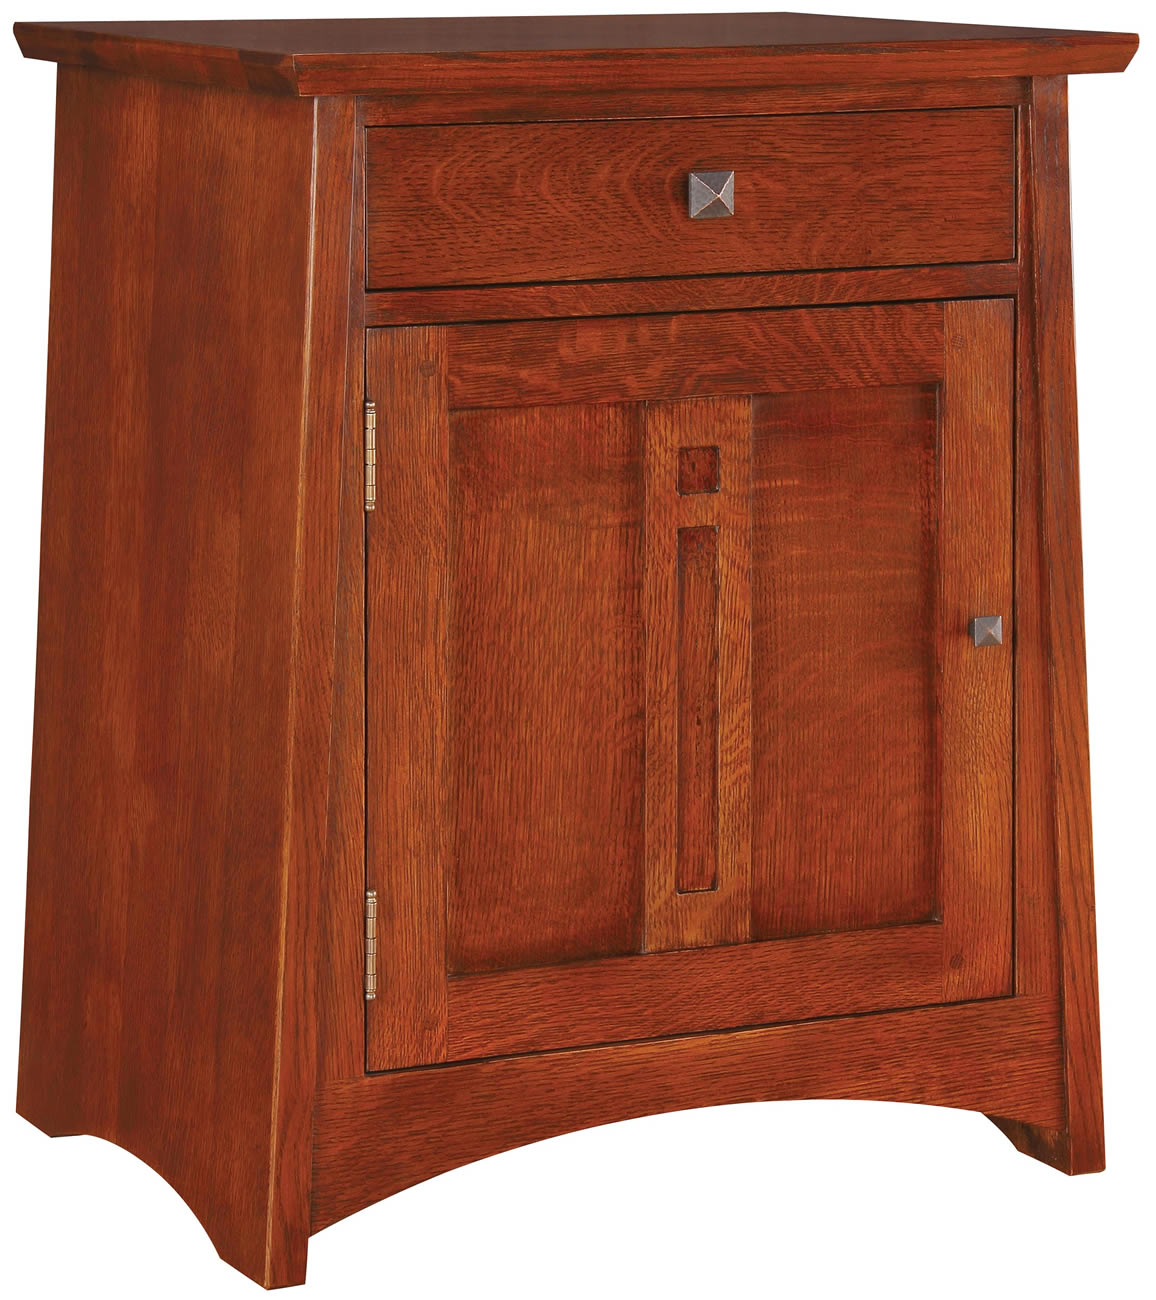 Smoked Italian Collection Mirror 3 Drawer Bedside Cabinet: Sideboards/Cabinets/Chests/Shelving